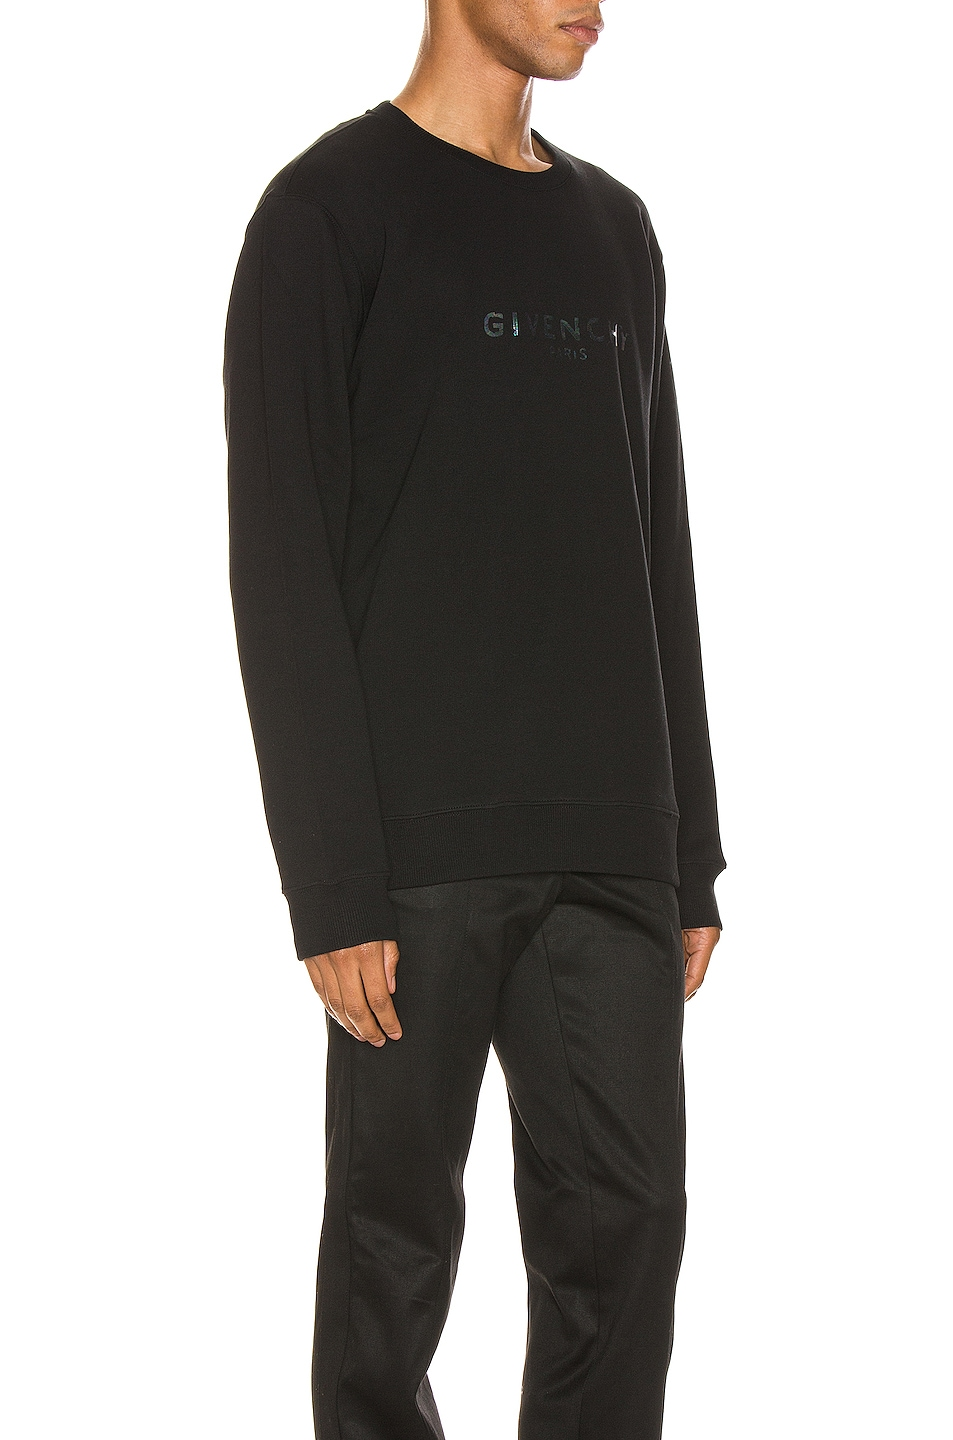 Image 2 of Givenchy Sweatshirt in Black